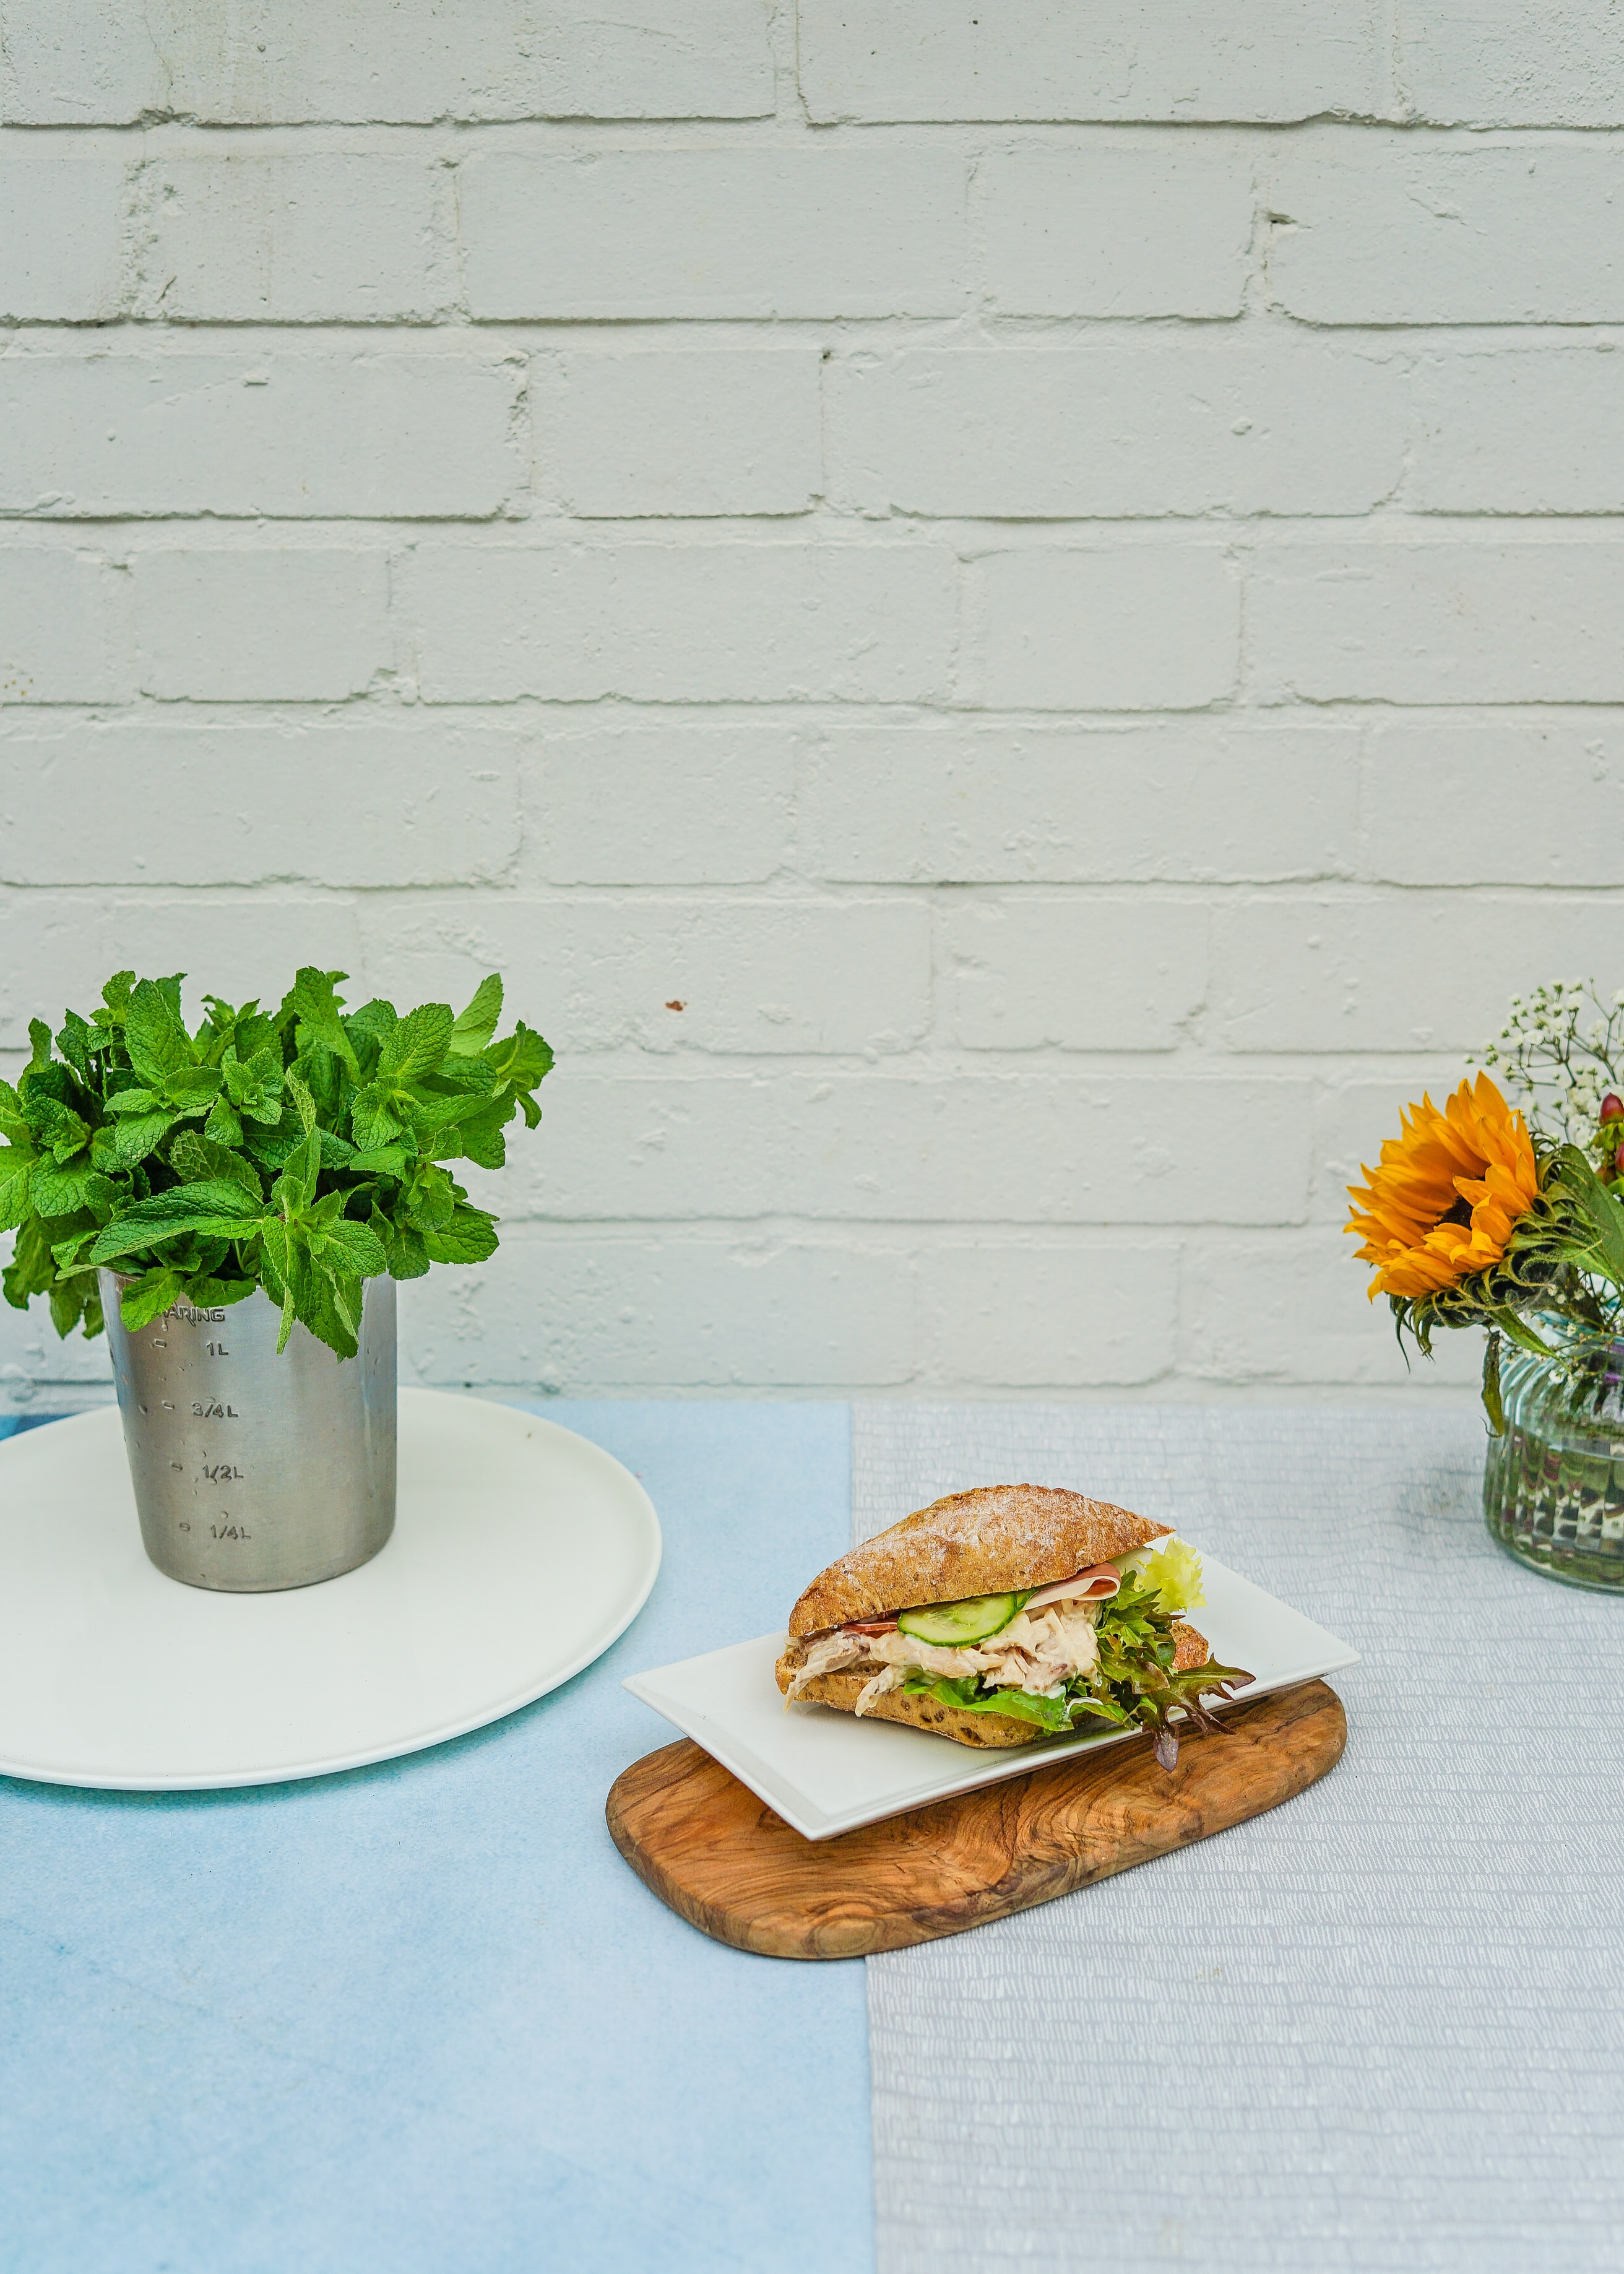 clubhouse sandwich on white ceramic plate